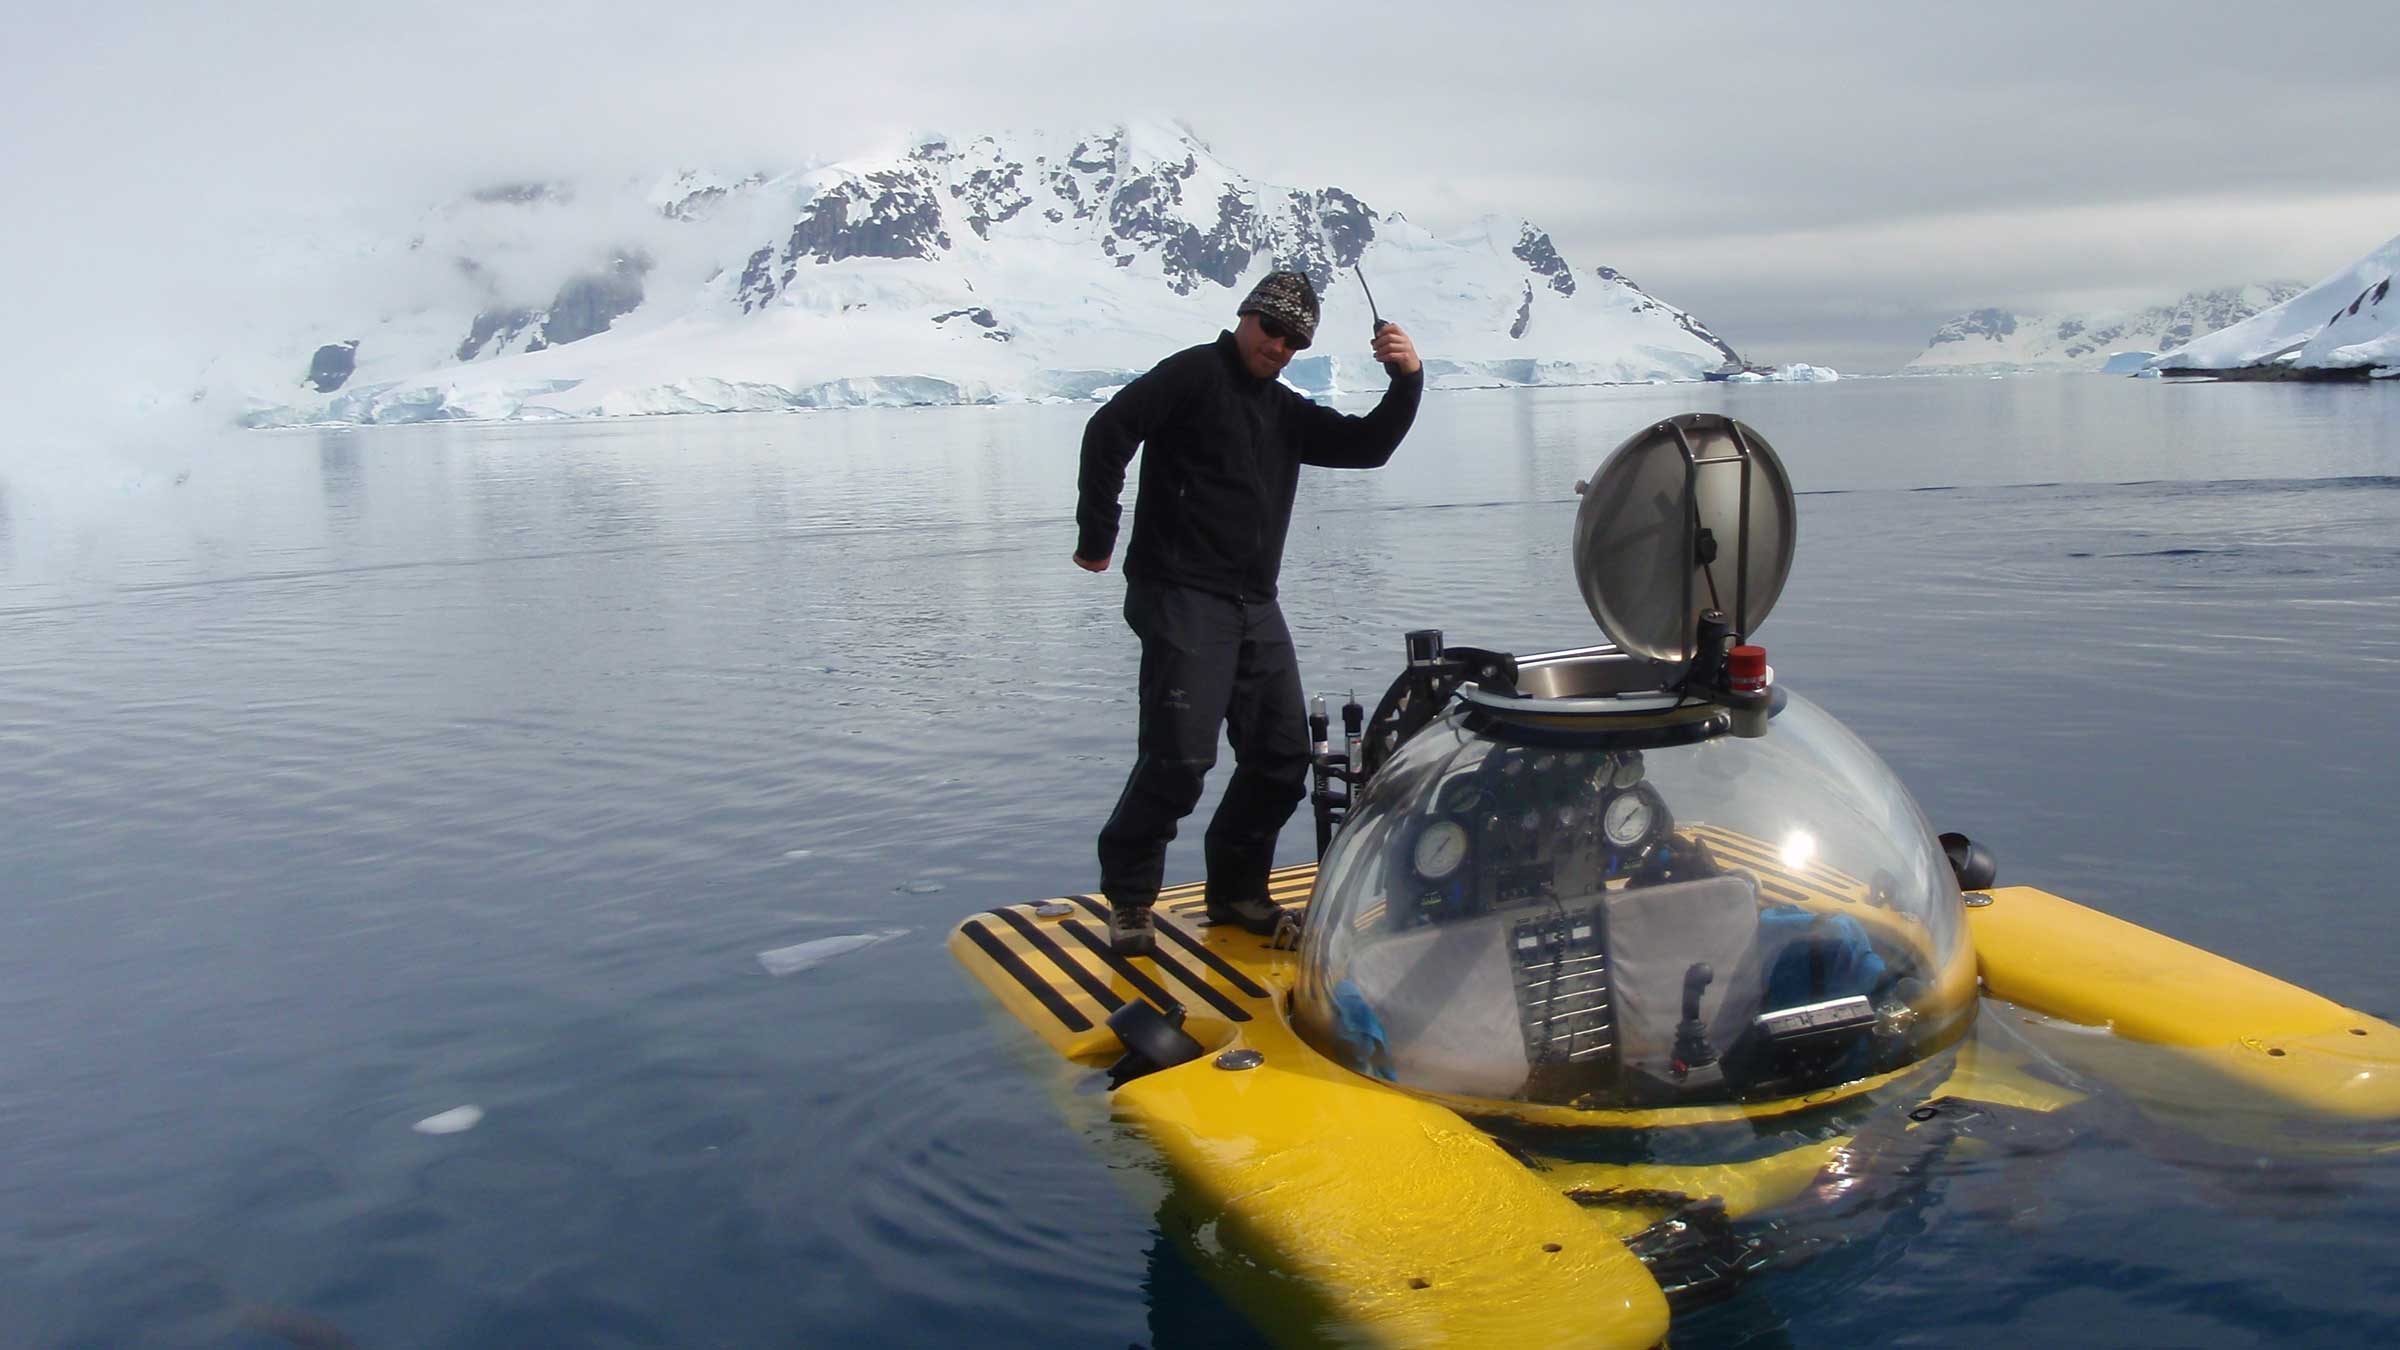 Demonstrating Triton's surface stability by standing on pontoons during surface ops In Antartica